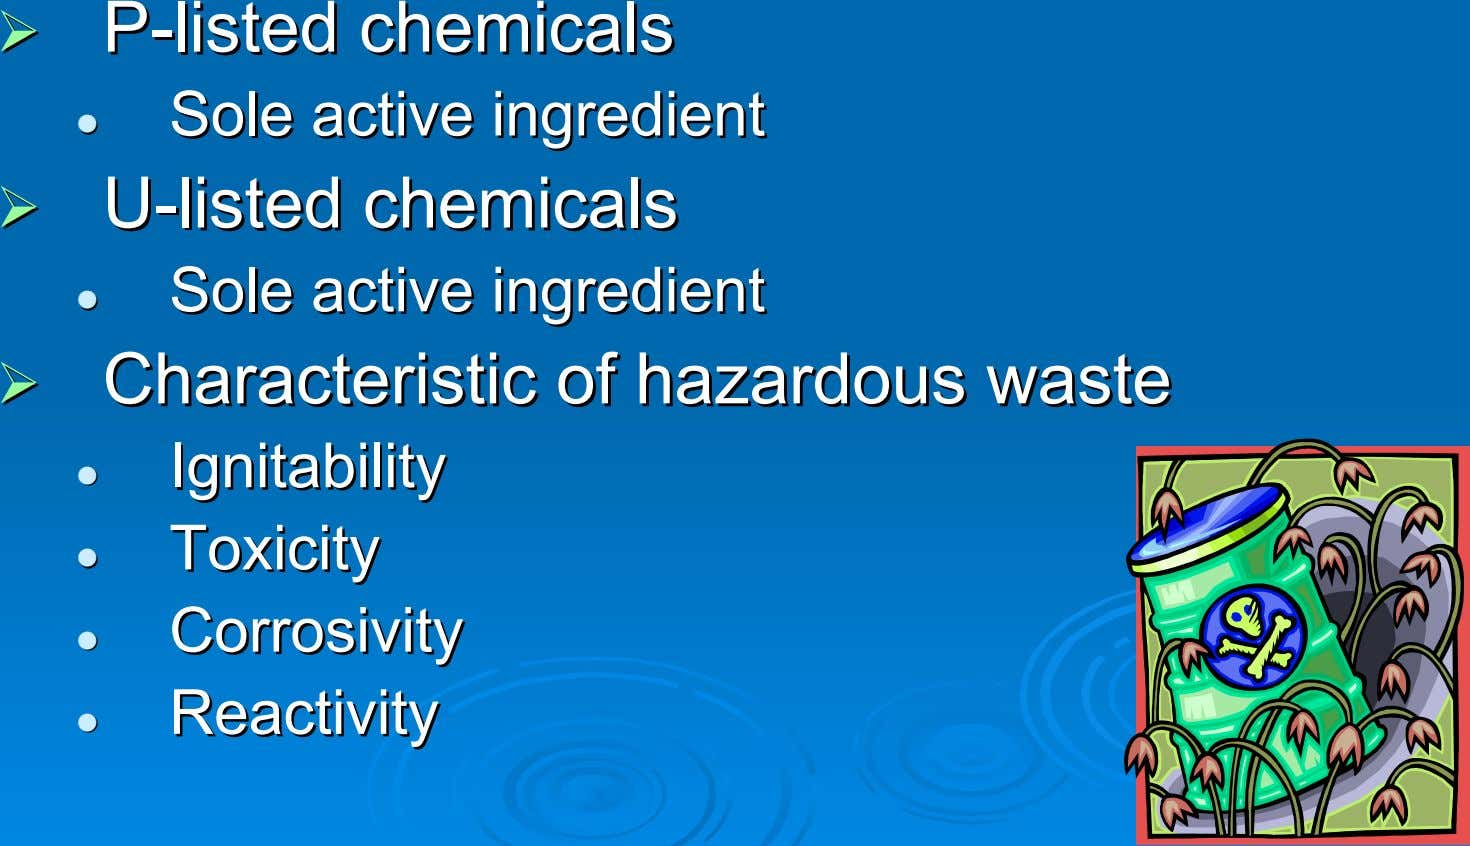 PP--listedlisted chemicalschemicals SoleSole activeactive ingredientingredient UU--listedlisted chemicalschemicals